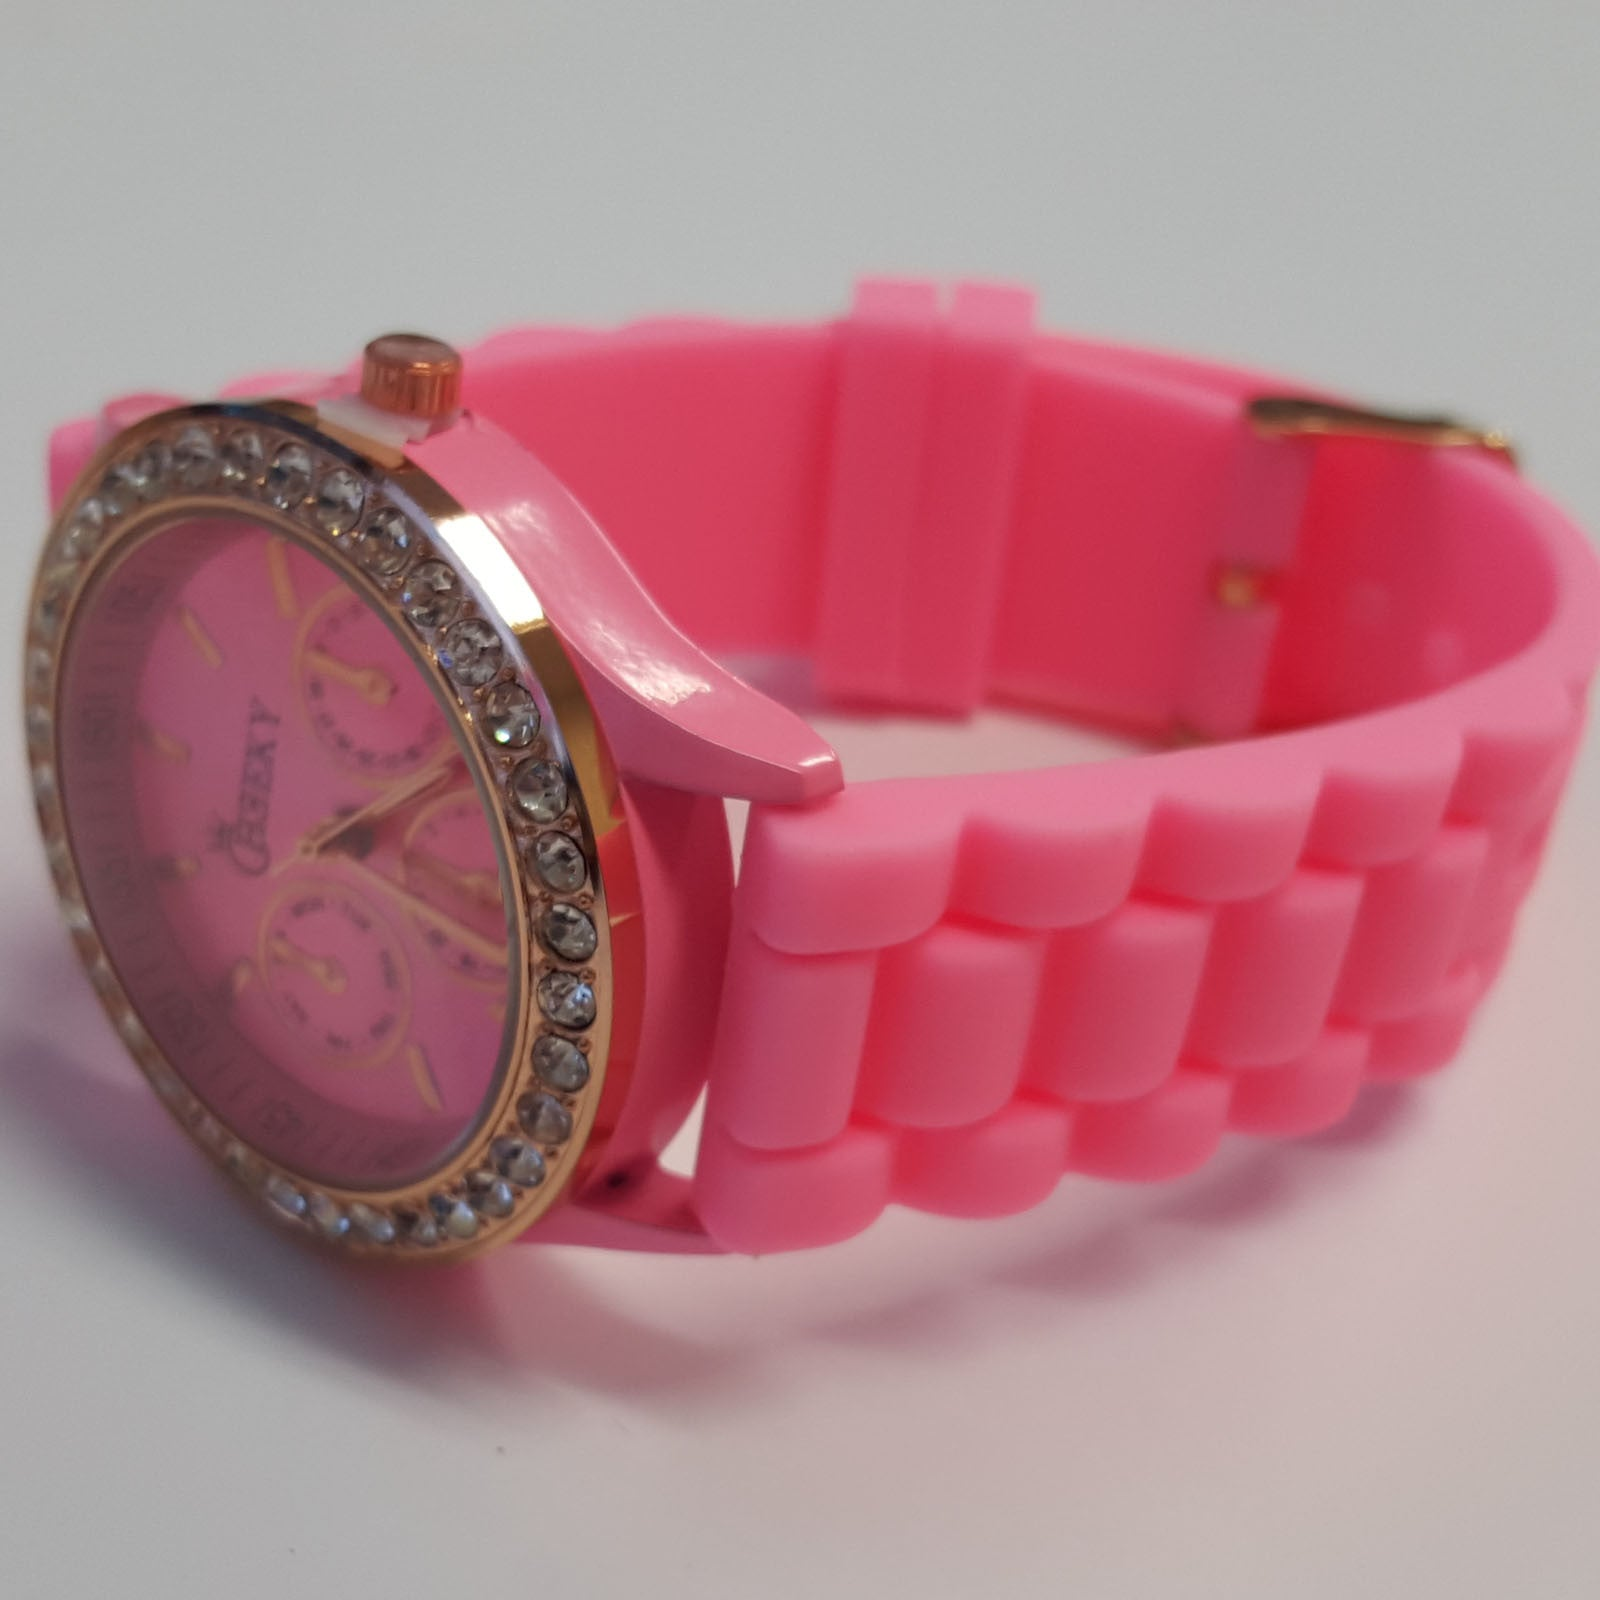 rado in pink store watches available womens unlimited blk